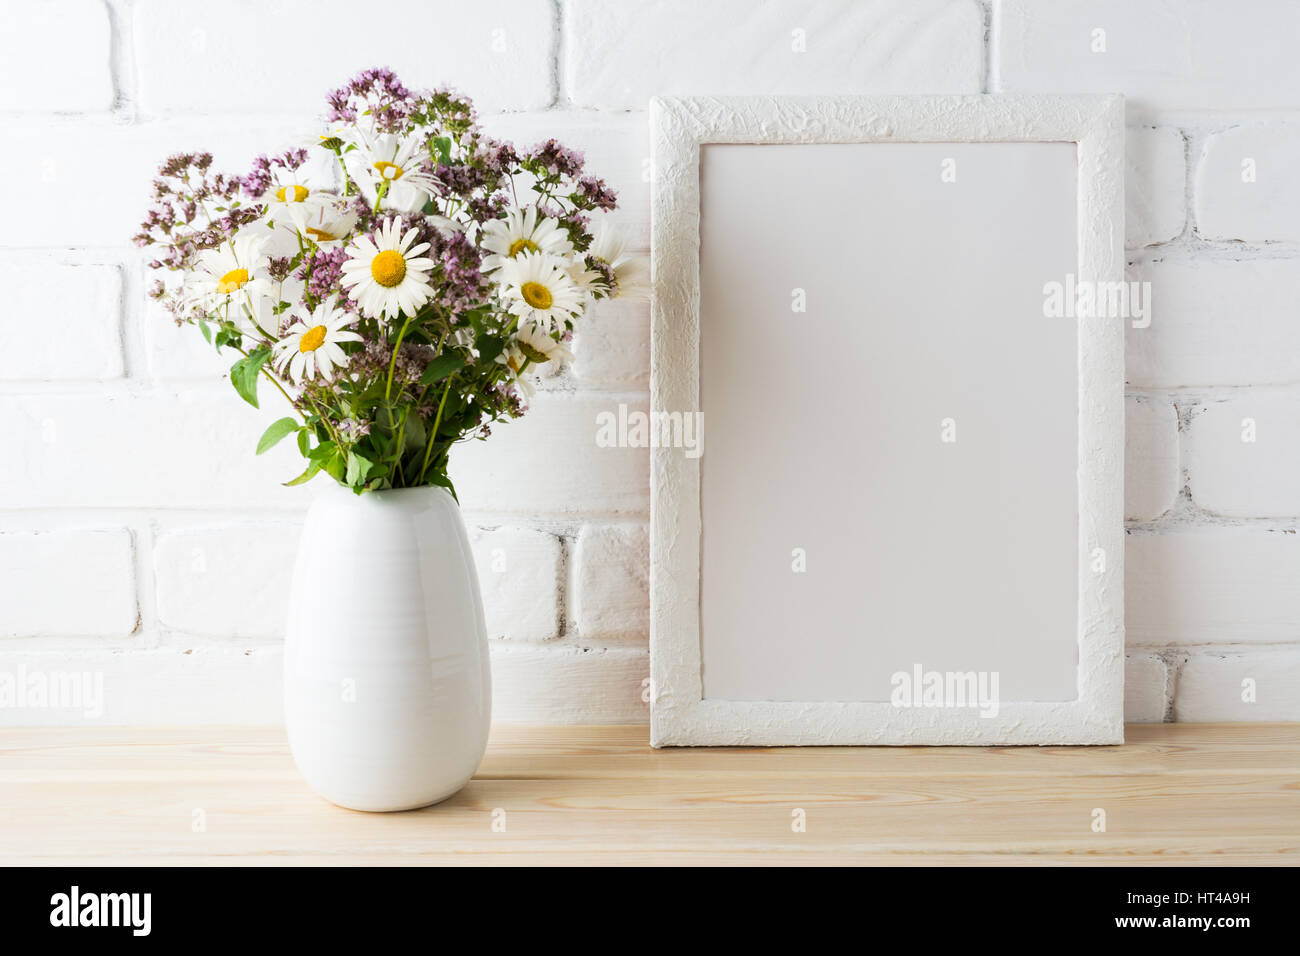 White frame mockup with blooming wildflower bouquet in in styled white frame mockup with blooming wildflower bouquet in in styled vase near painted brick wall empty frame mock up for presentation design template reviewsmspy